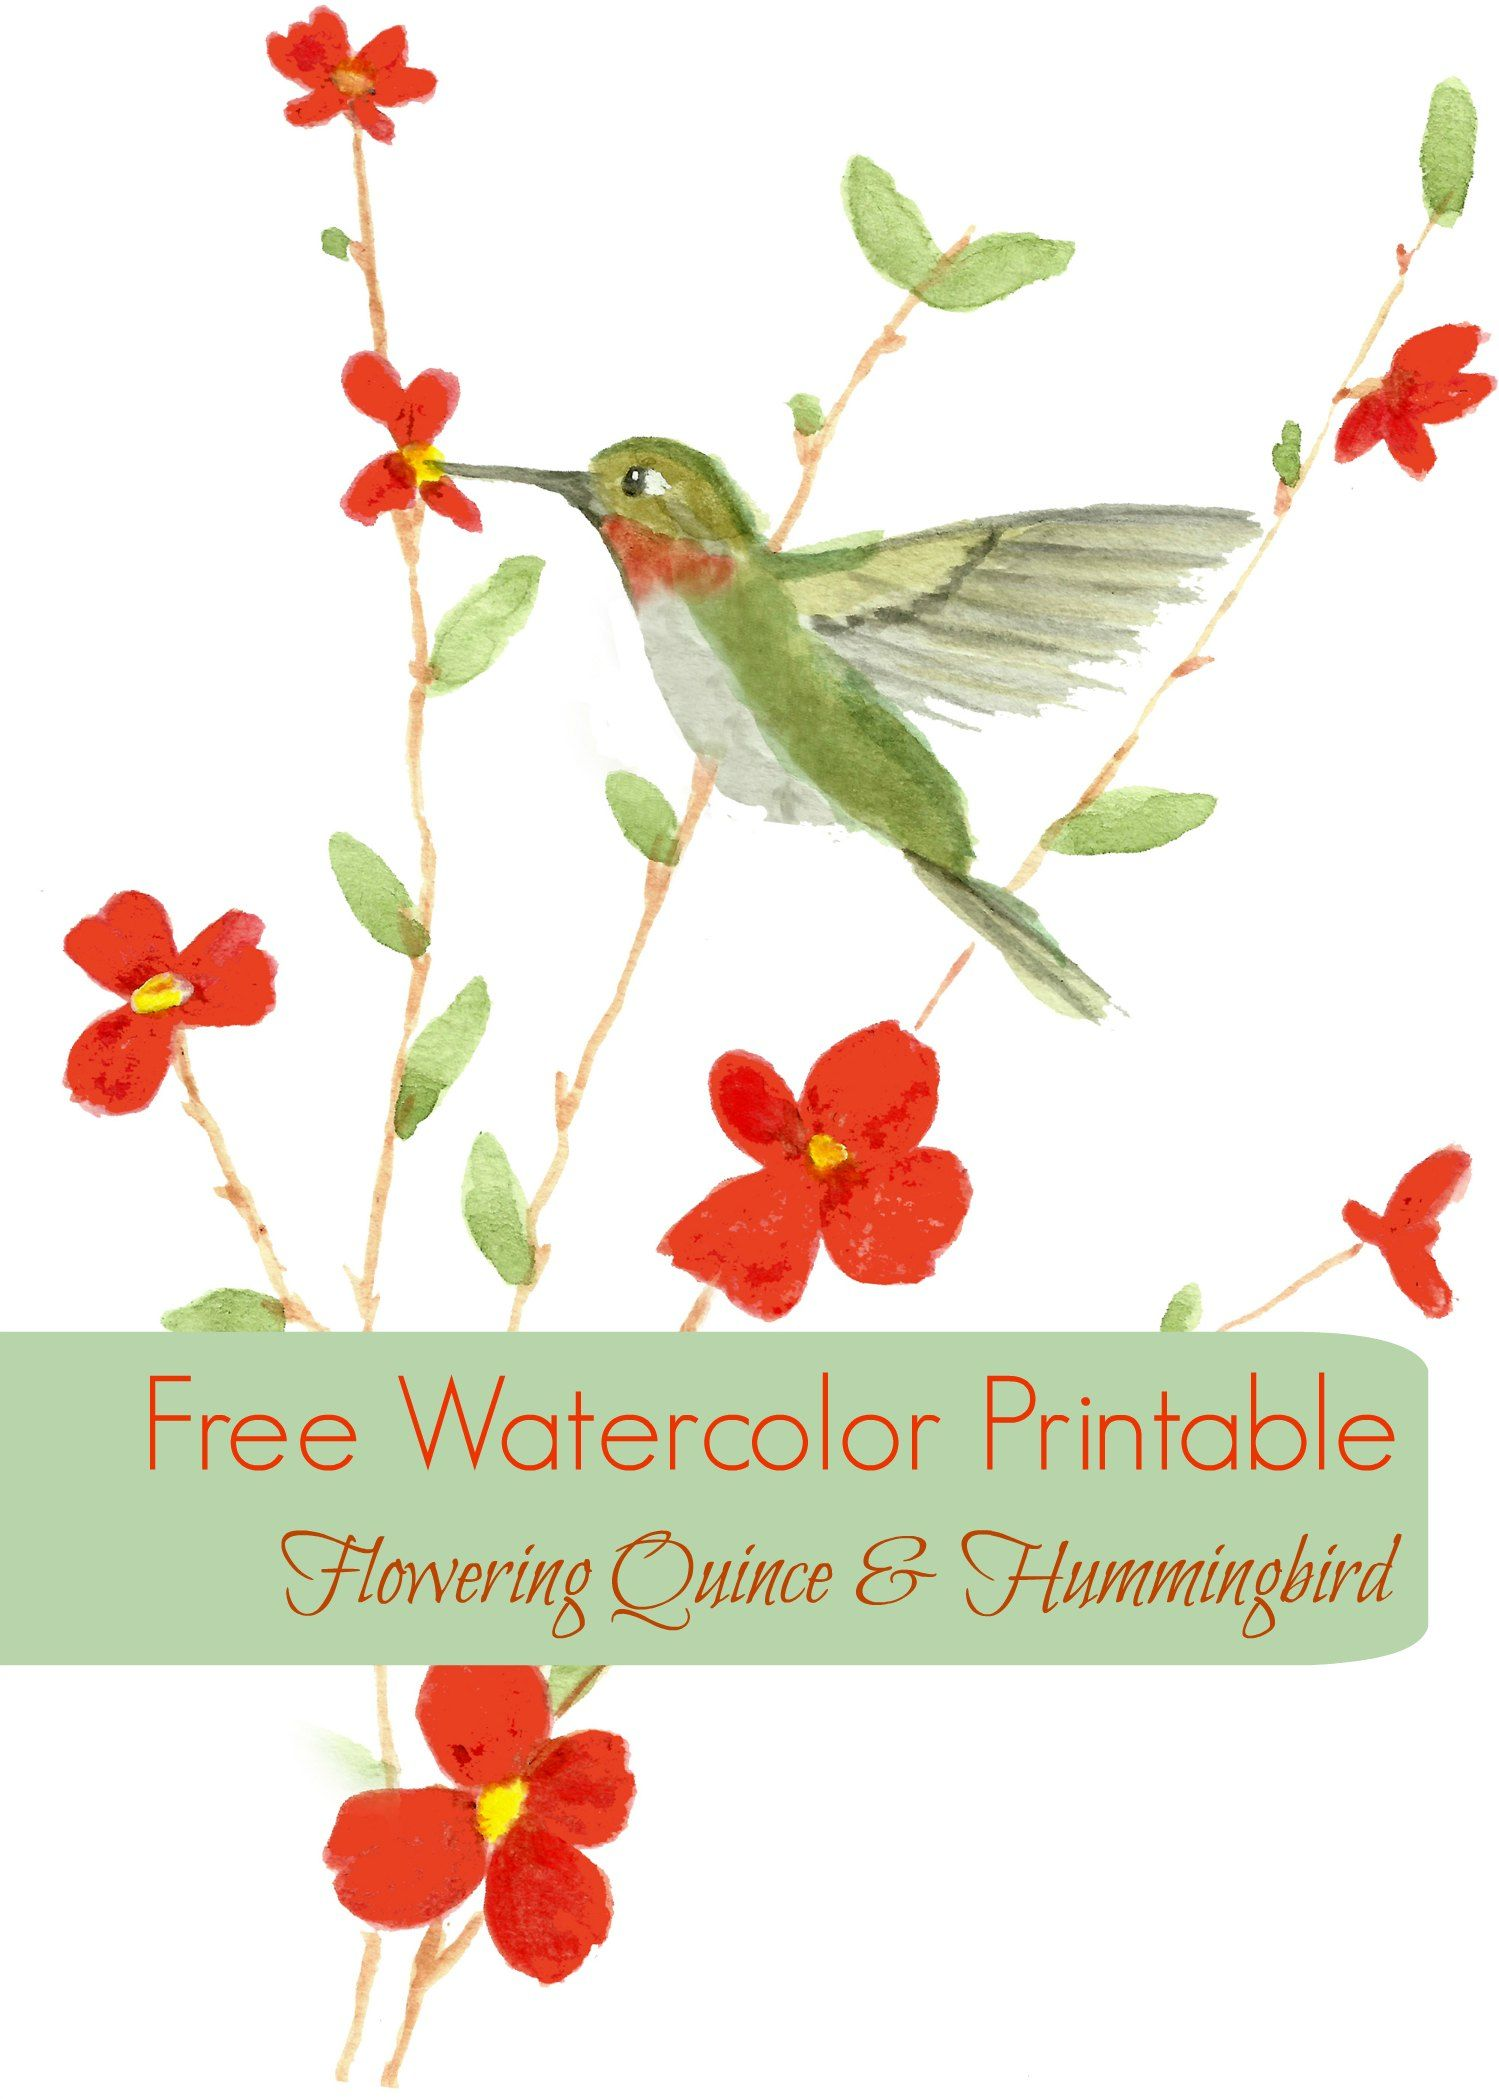 Free Watercolor Printable Card | Watercolor, Free printables and ...